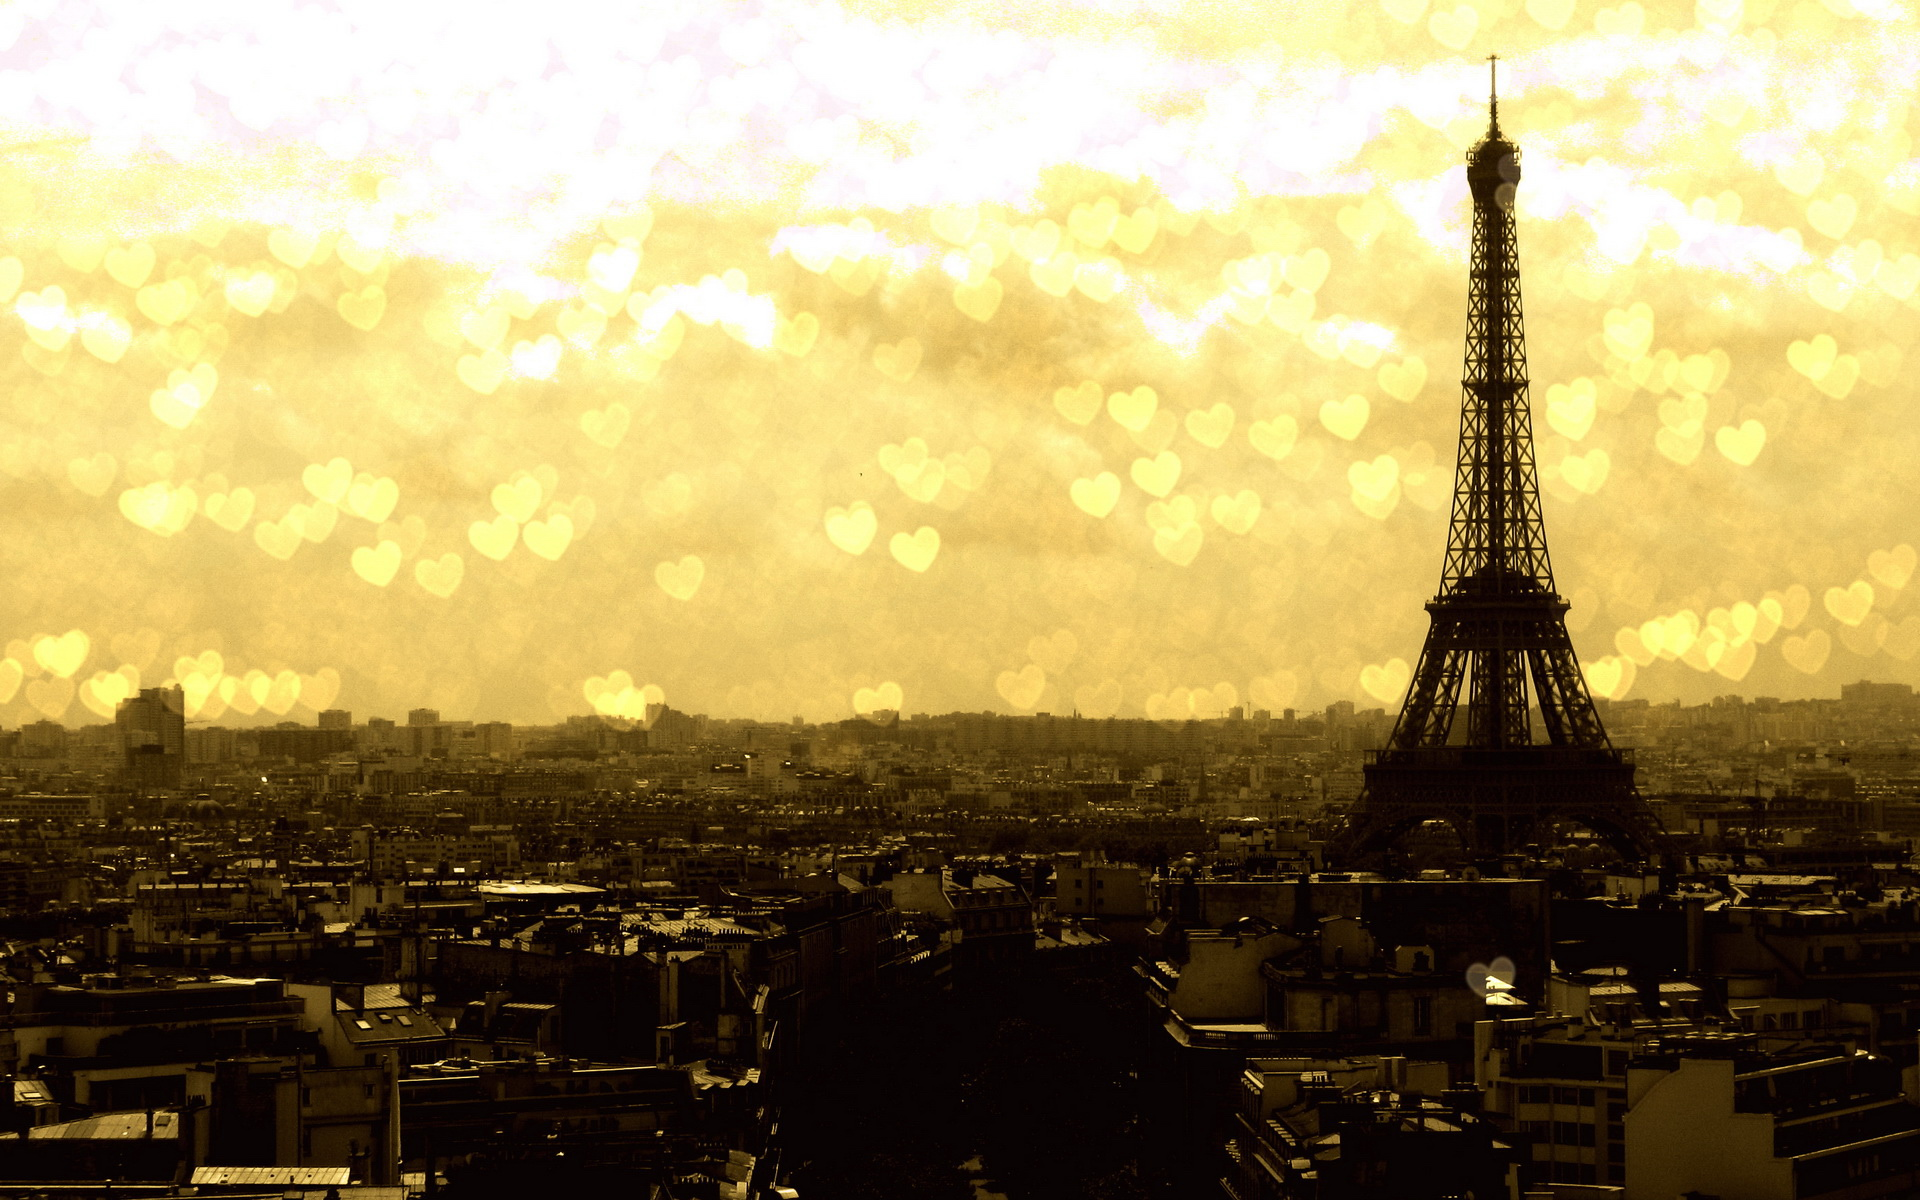 Eiffel Tower Wallpaper 1920x1200 #39512